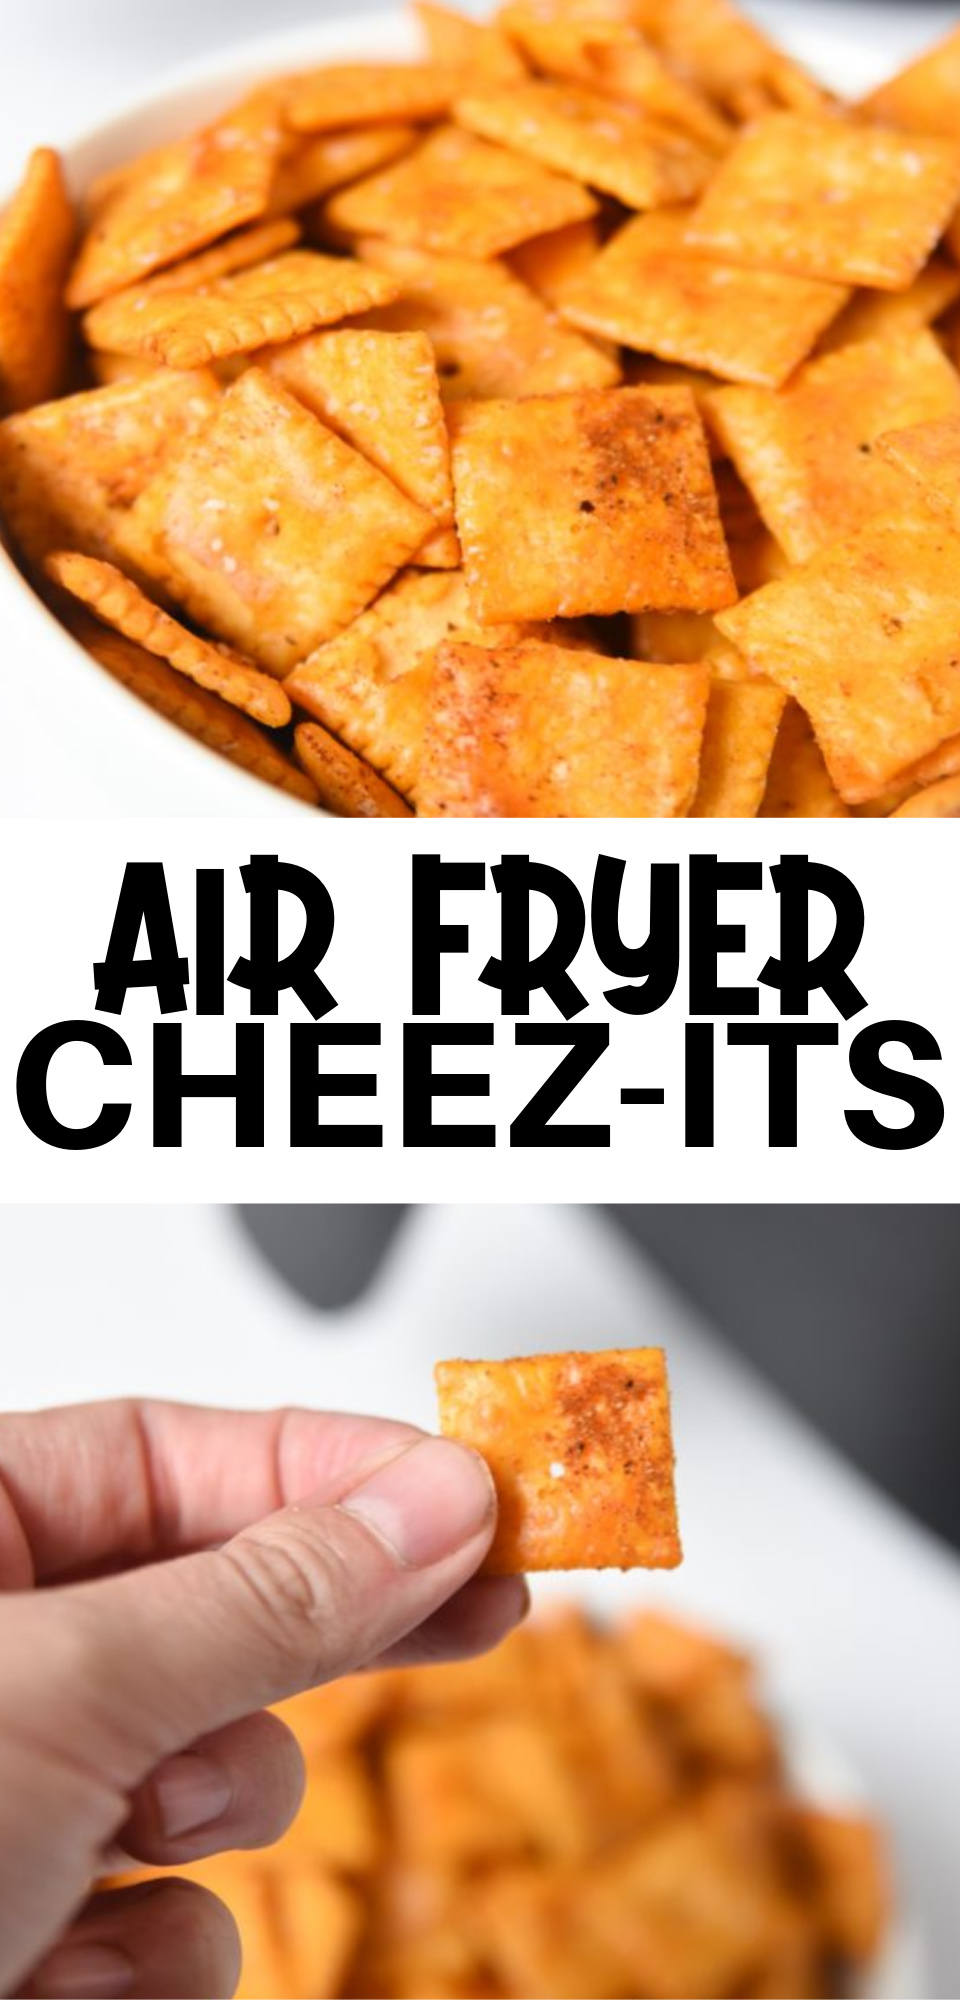 In just a few minutes, your Cheez-it snacks can taste like your favorite seasoning! You won't be able to stop eating this irresistible Air Fryer snack via @simplysidedishes89